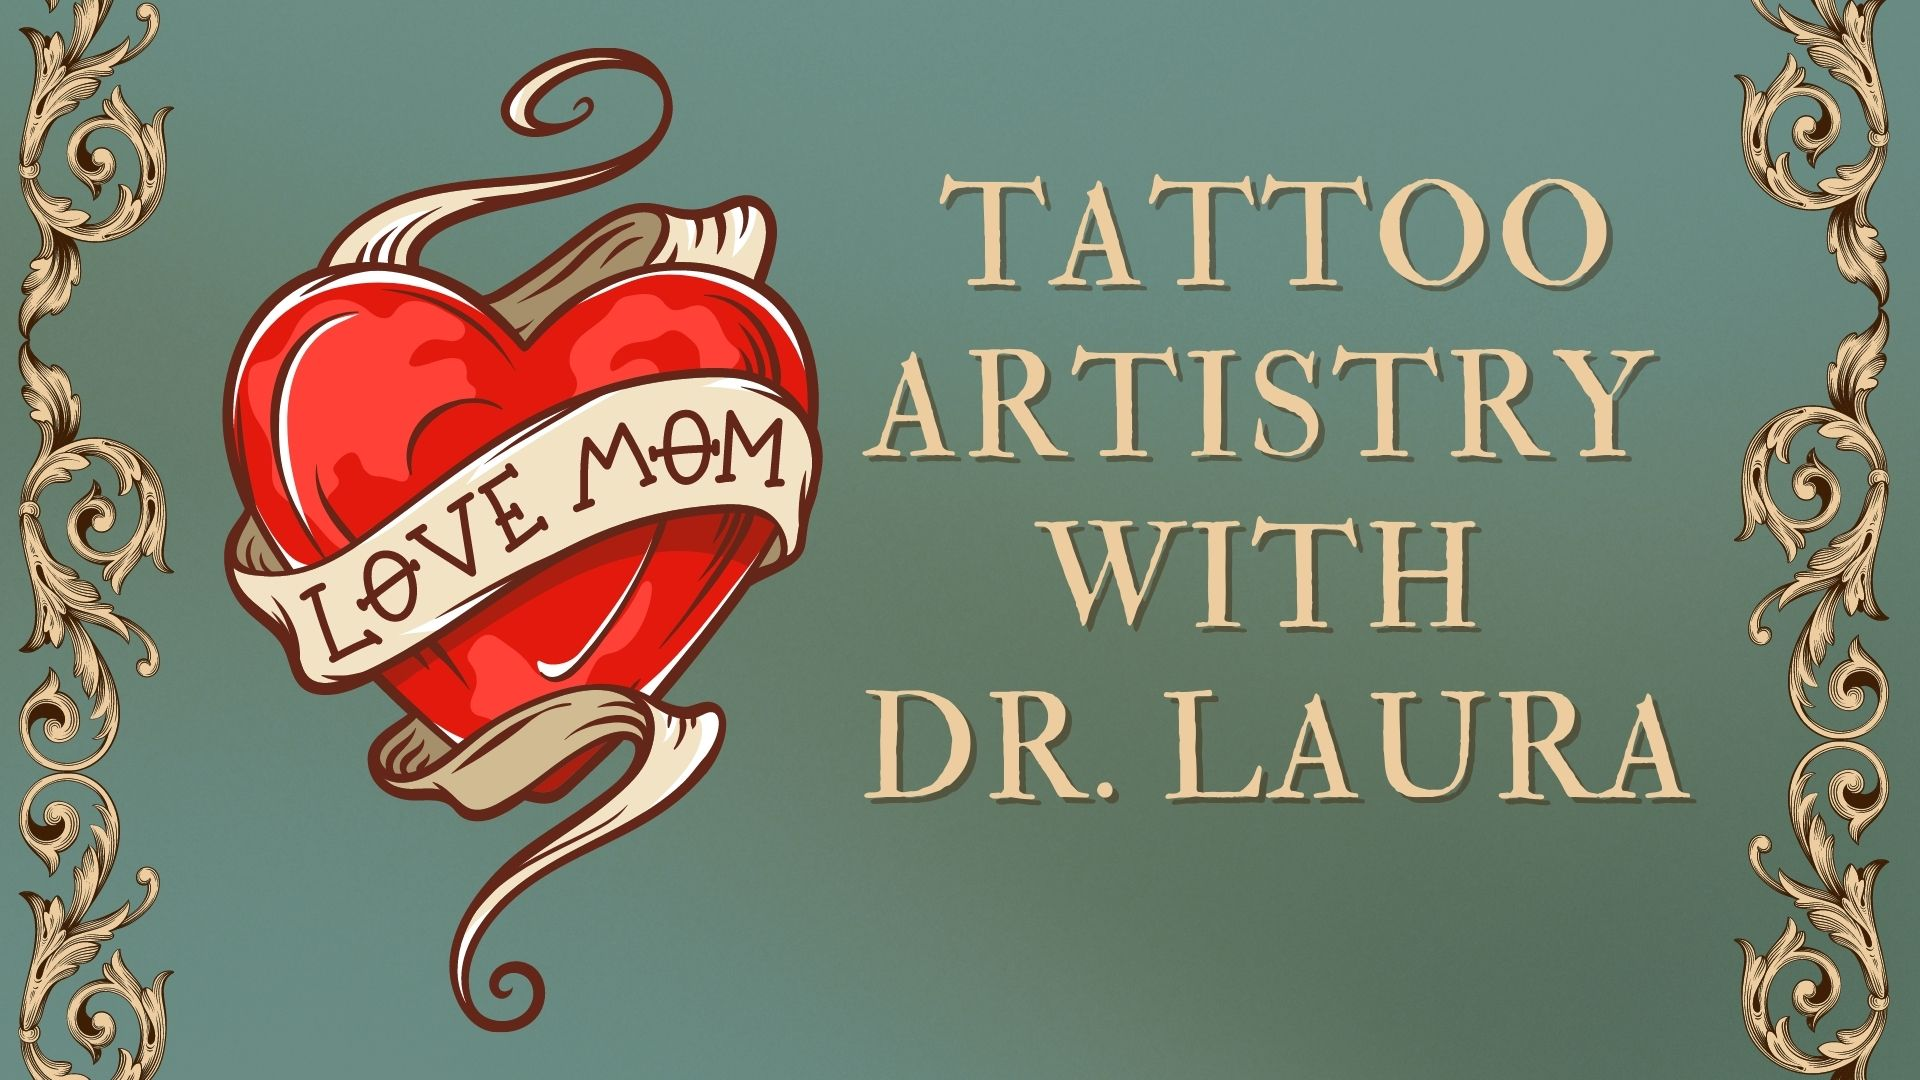 YouTube: Tattoo Artistry with Dr. Laura